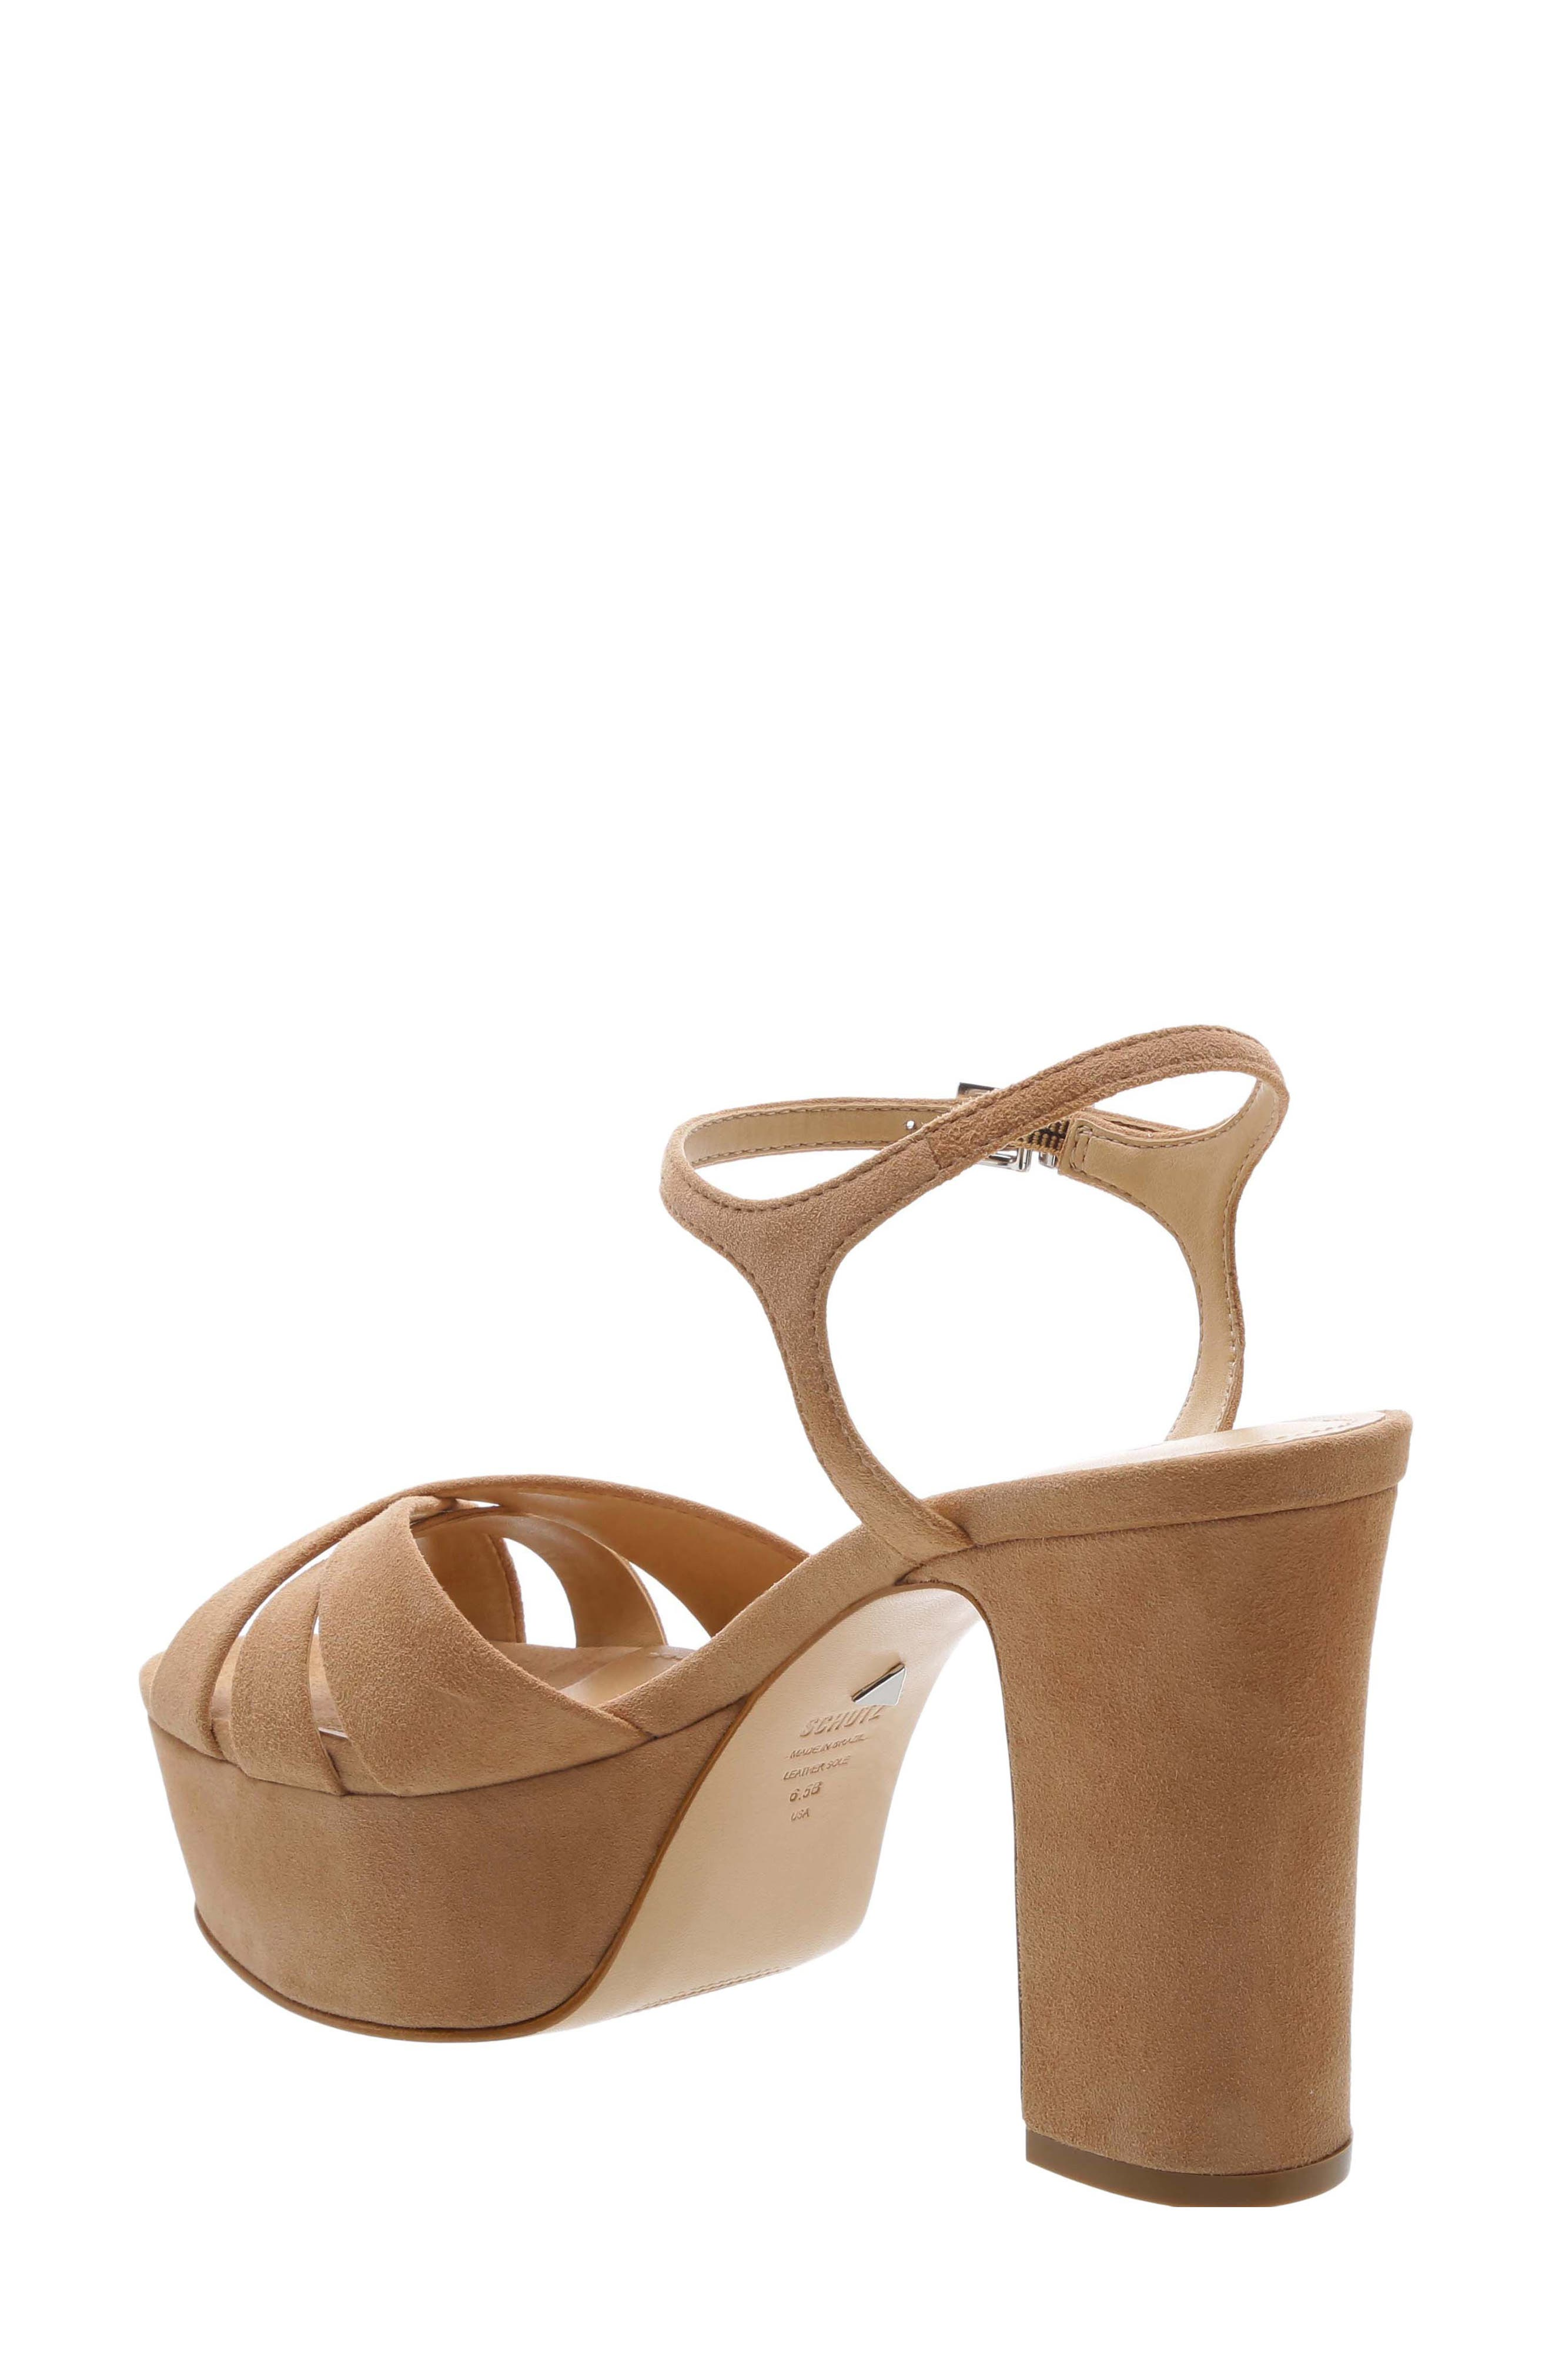 a0c27f1304d Women s Schutz Shoes